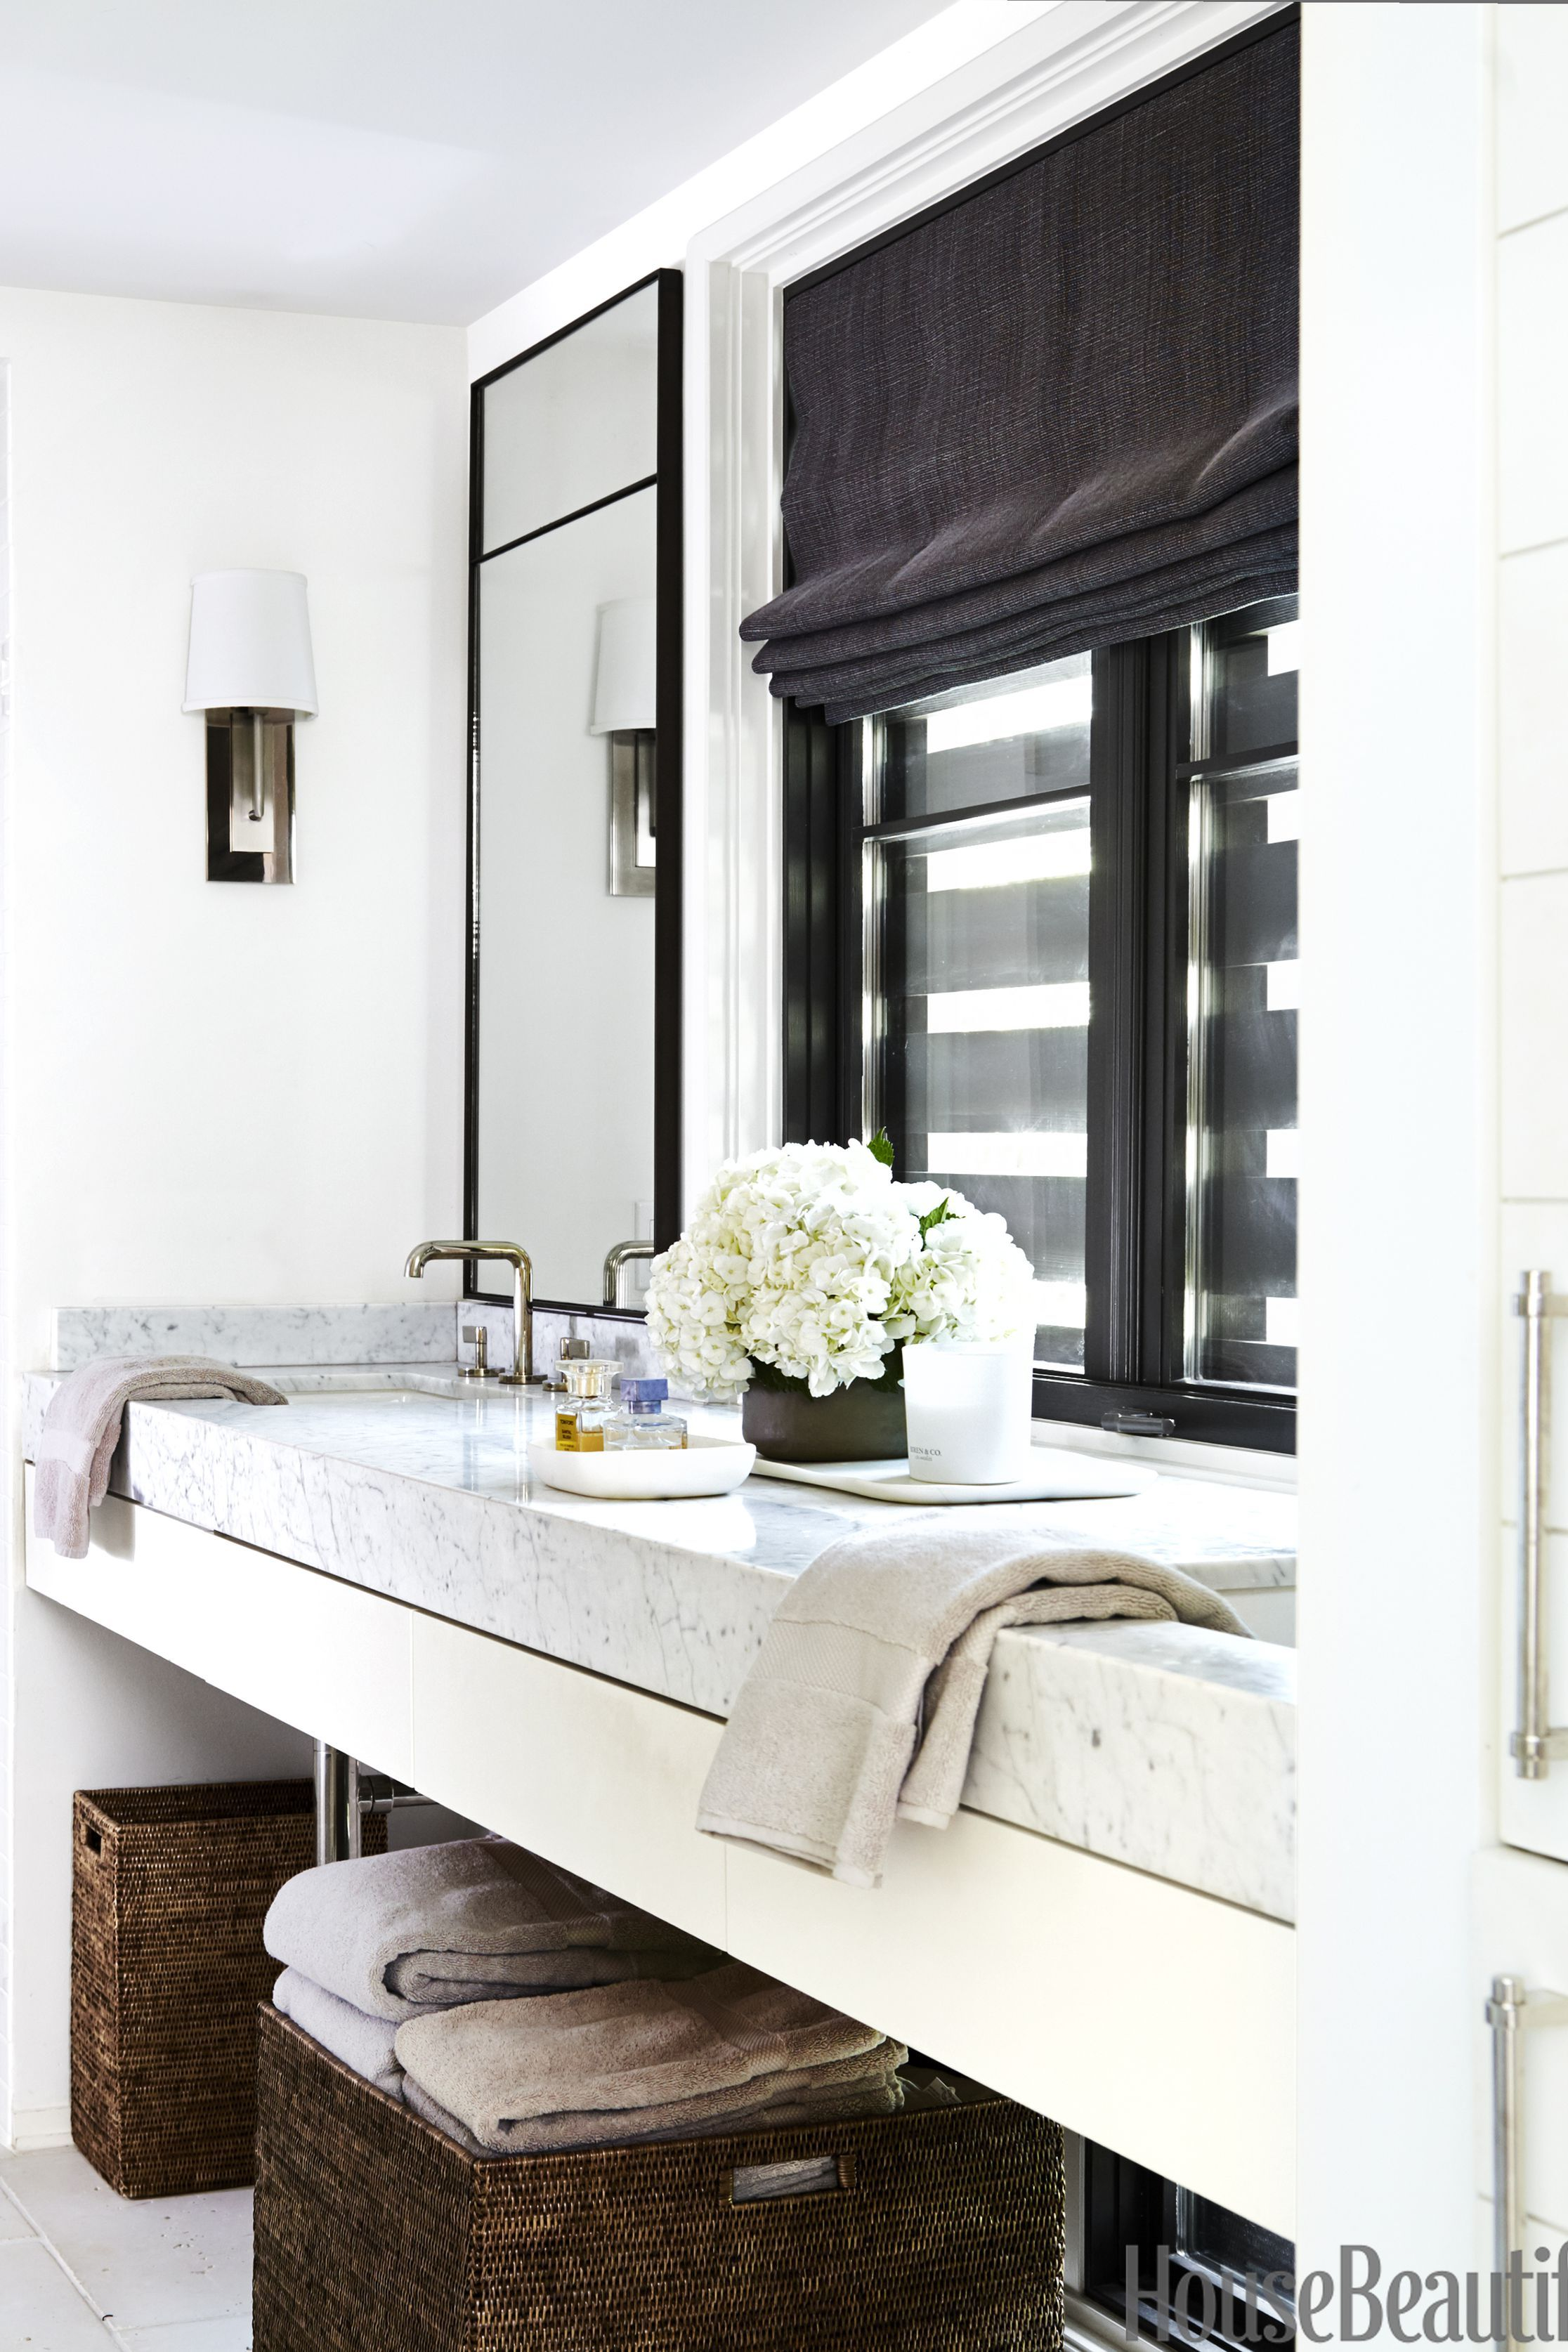 tile designs for living room floors in the philippines wall shelves 15 black and white bathroom ideas - & ...